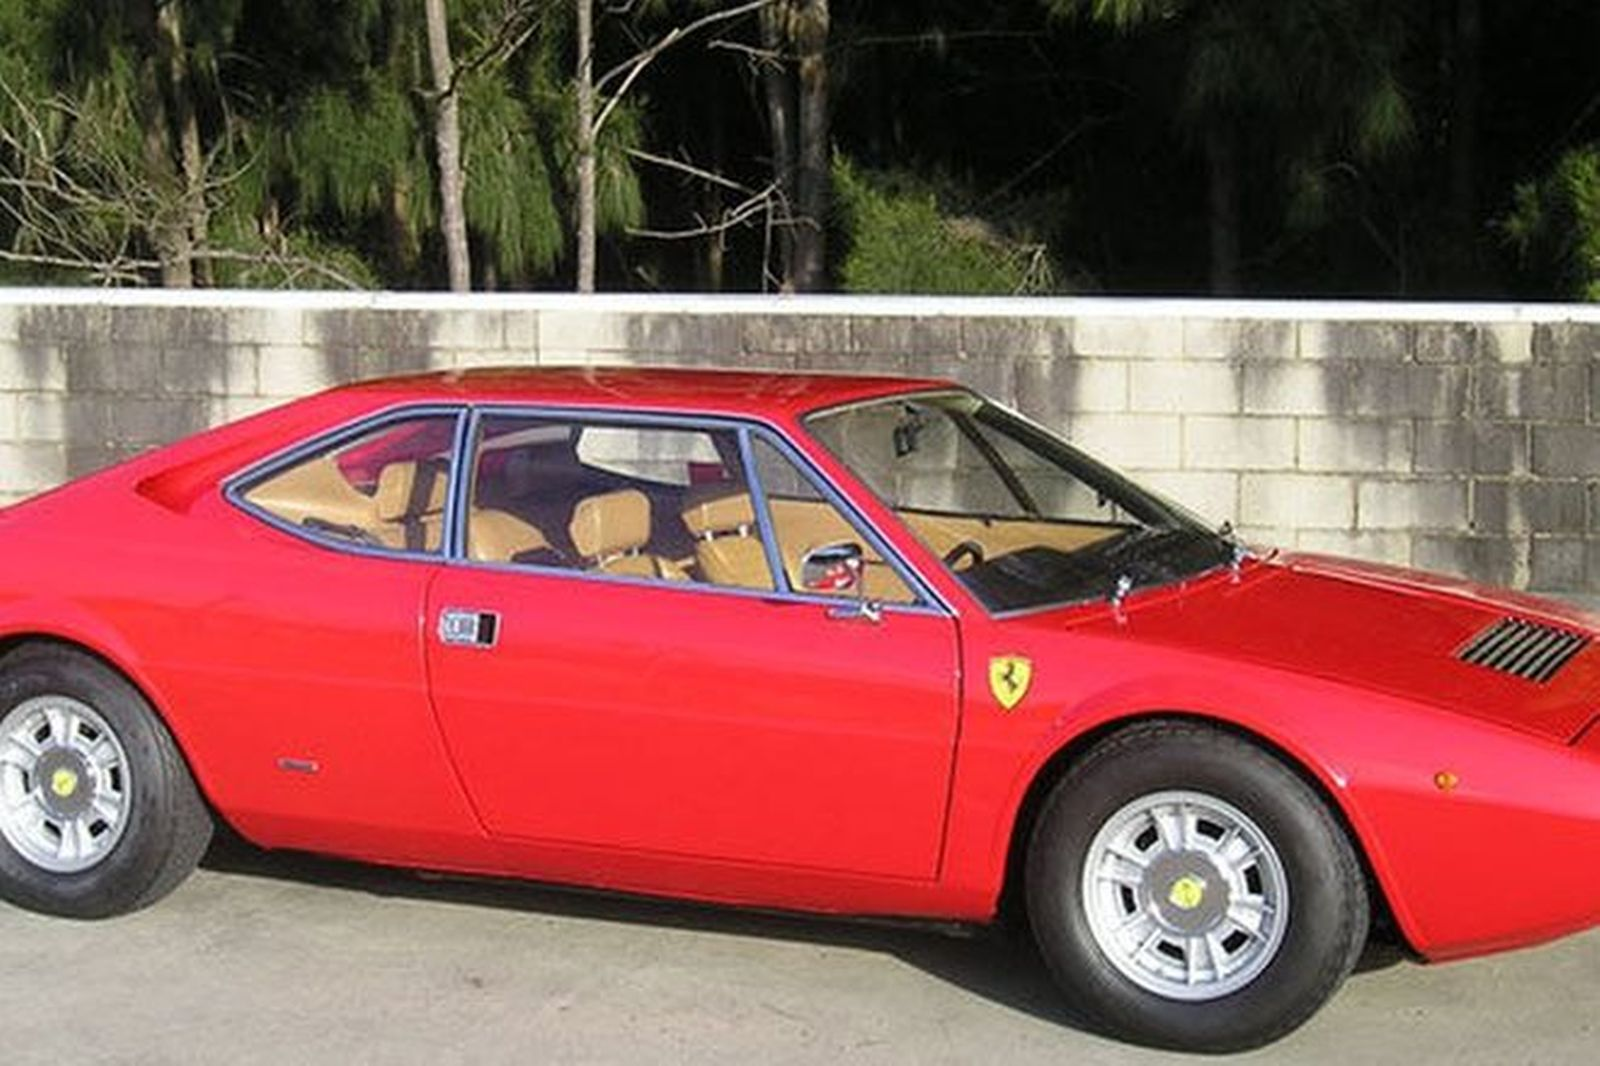 sold ferrari dino 308 gt4 coupe auctions lot 9 shannons. Black Bedroom Furniture Sets. Home Design Ideas